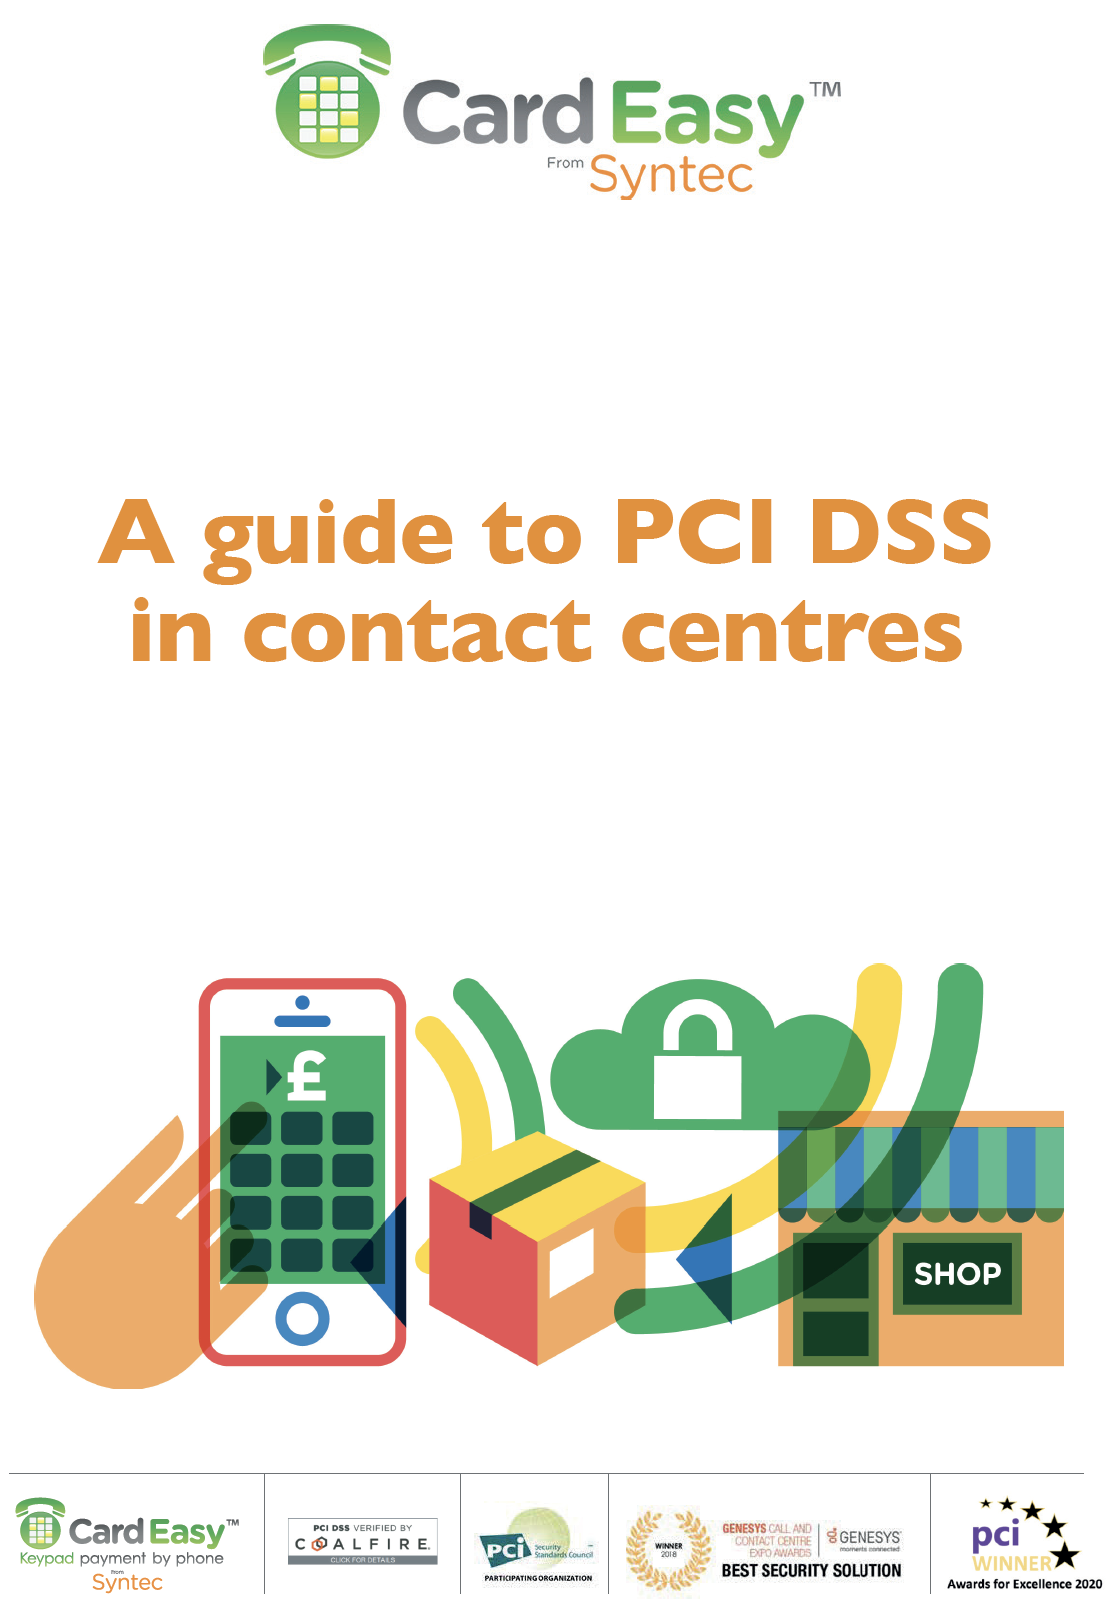 A guide to PCI DSS in contact centers